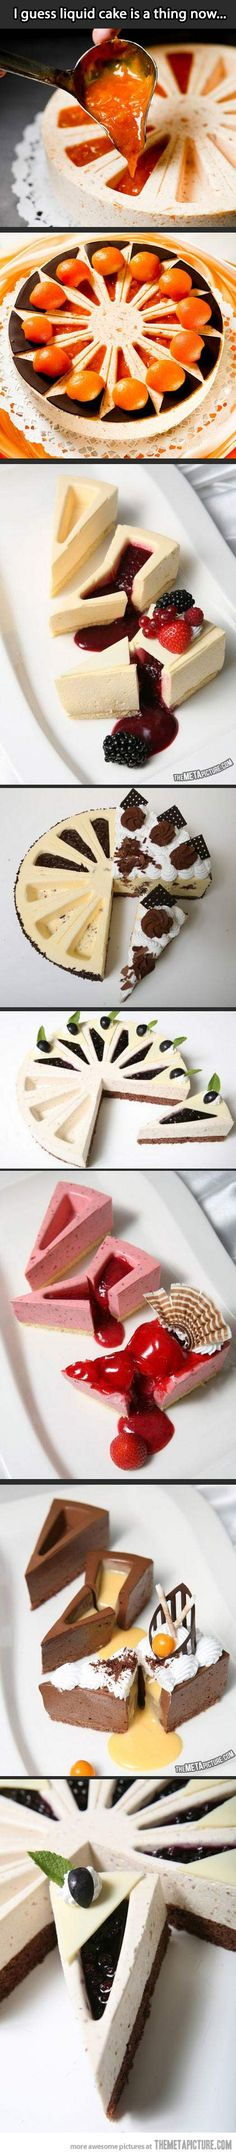 Filled Cheesecake